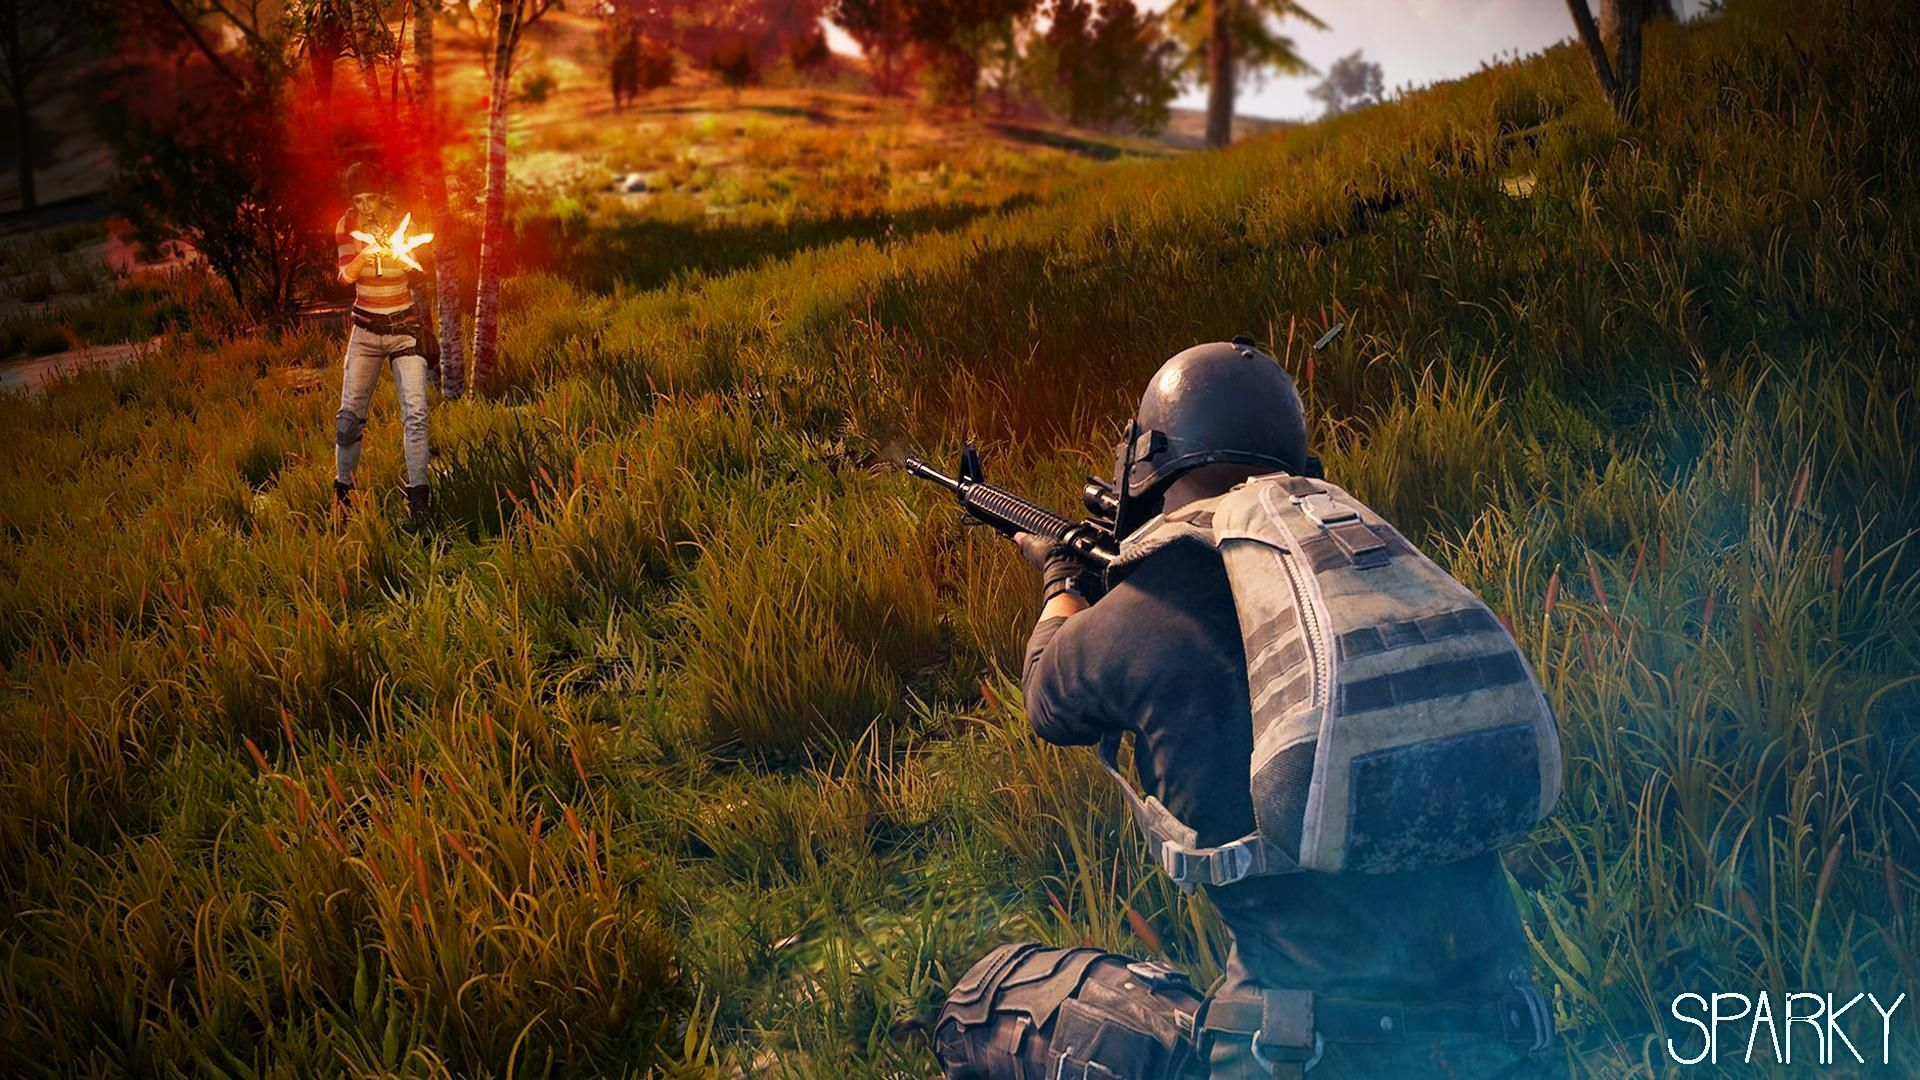 Pubg Wallpapers Hd 4k: Top Free PUBG 4K Backgrounds